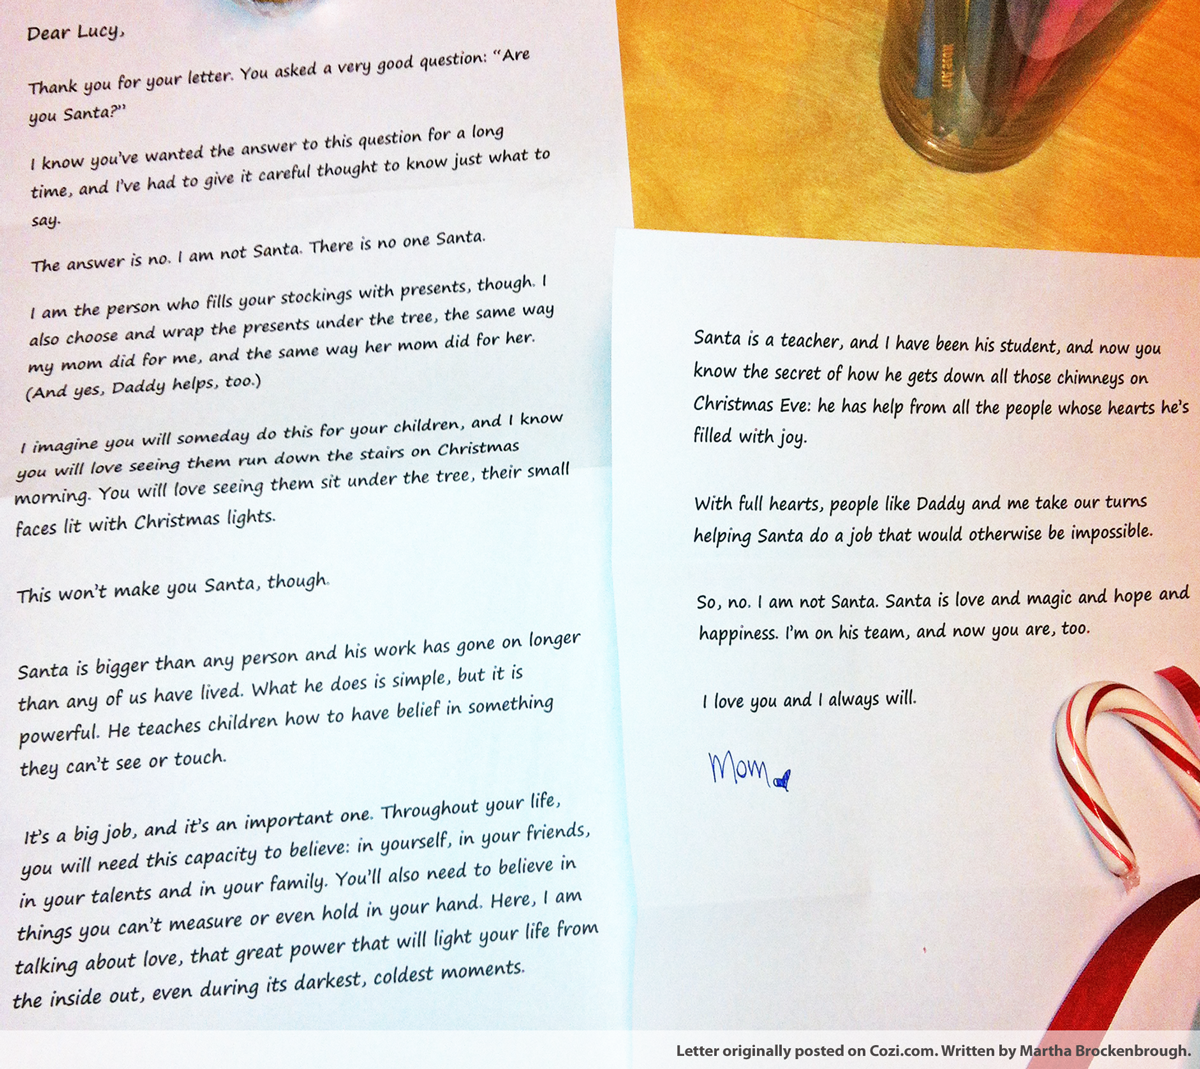 the truth about santa love this letter and will keep it in mind